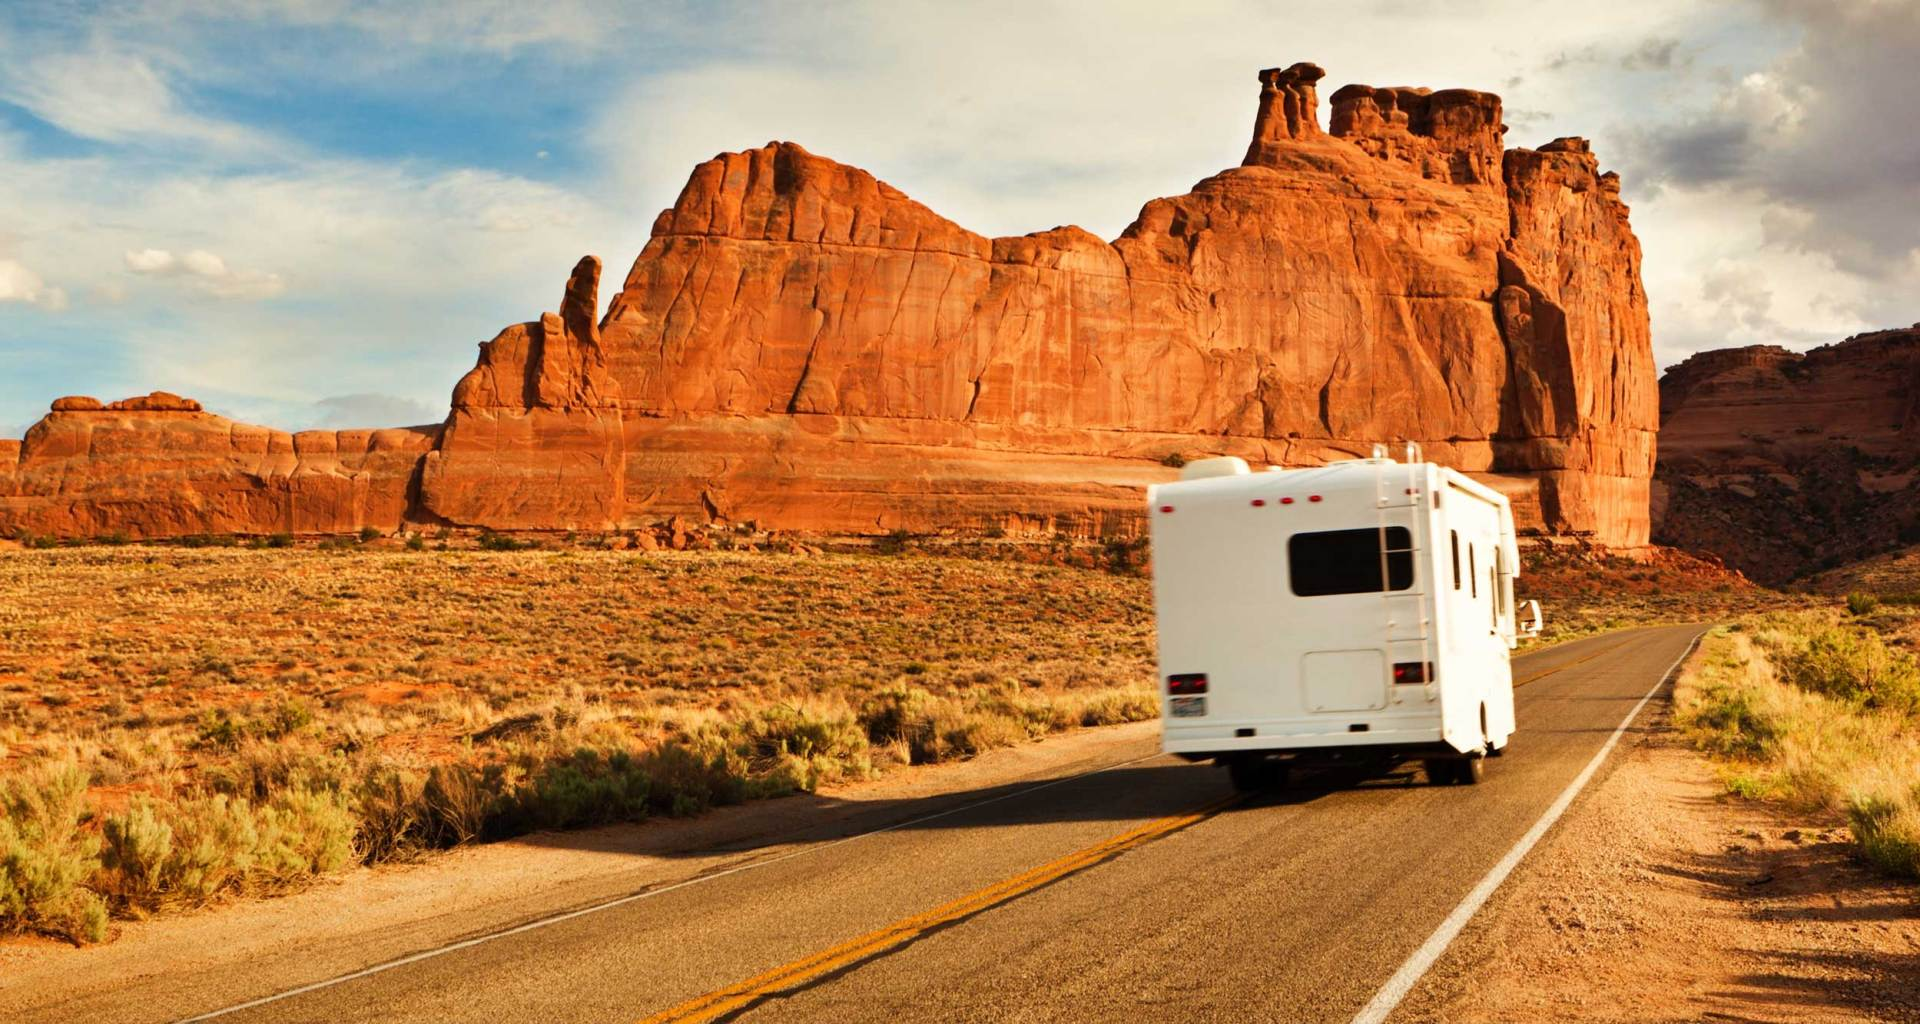 Wheelchair accessible RV driving down road.